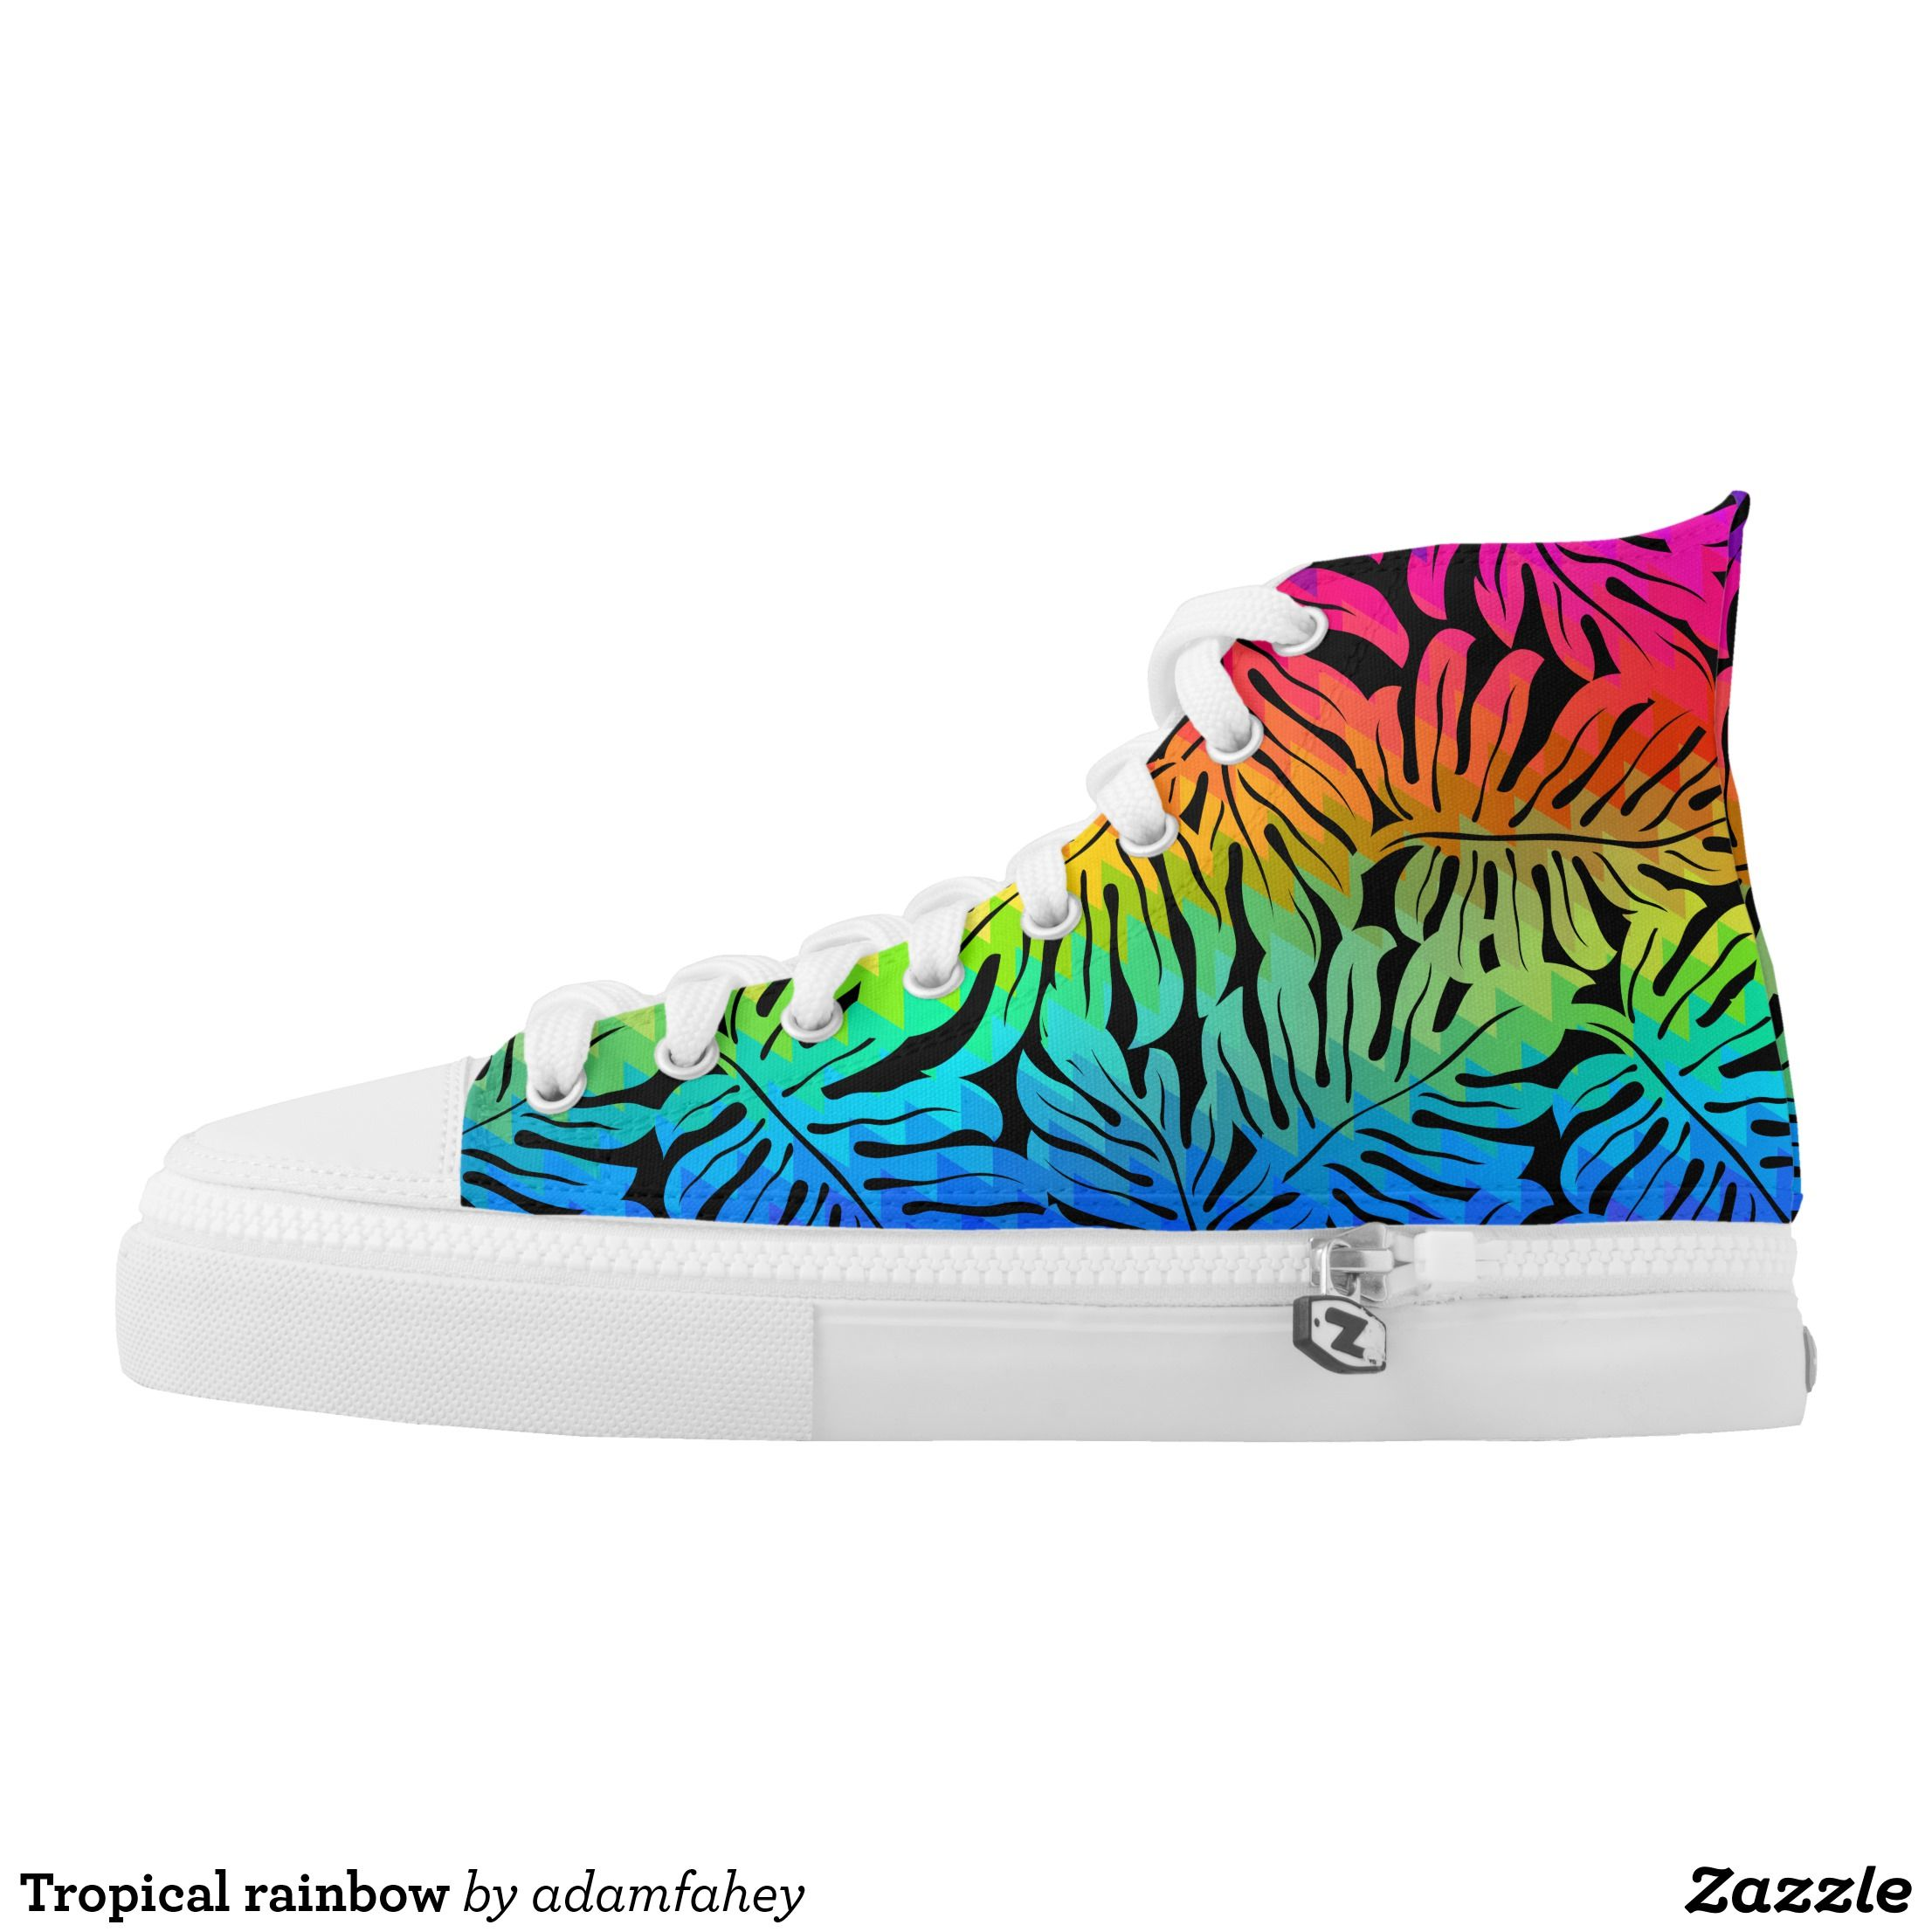 0880fa58751b Tropical rainbow High-Top sneakers - Canvas-Top Rubber-Sole Athletic Shoes  By Talented Fashion And Graphic Designers - #shoes #sneakers #footwear ...